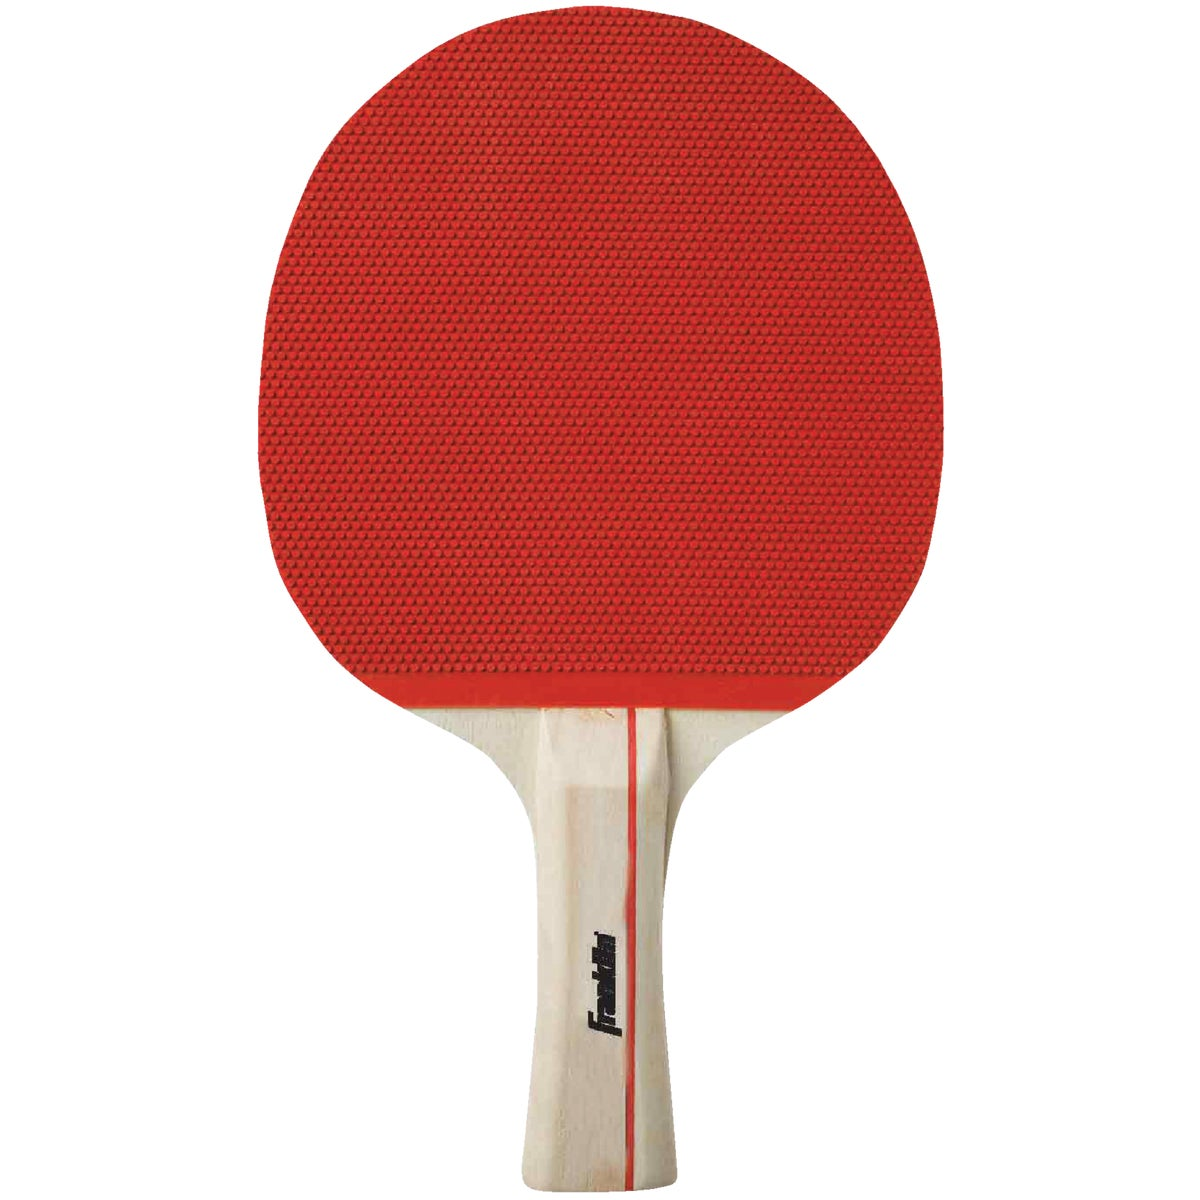 TABLE TENNIS PADDLE - 2201 by Franklin Sports